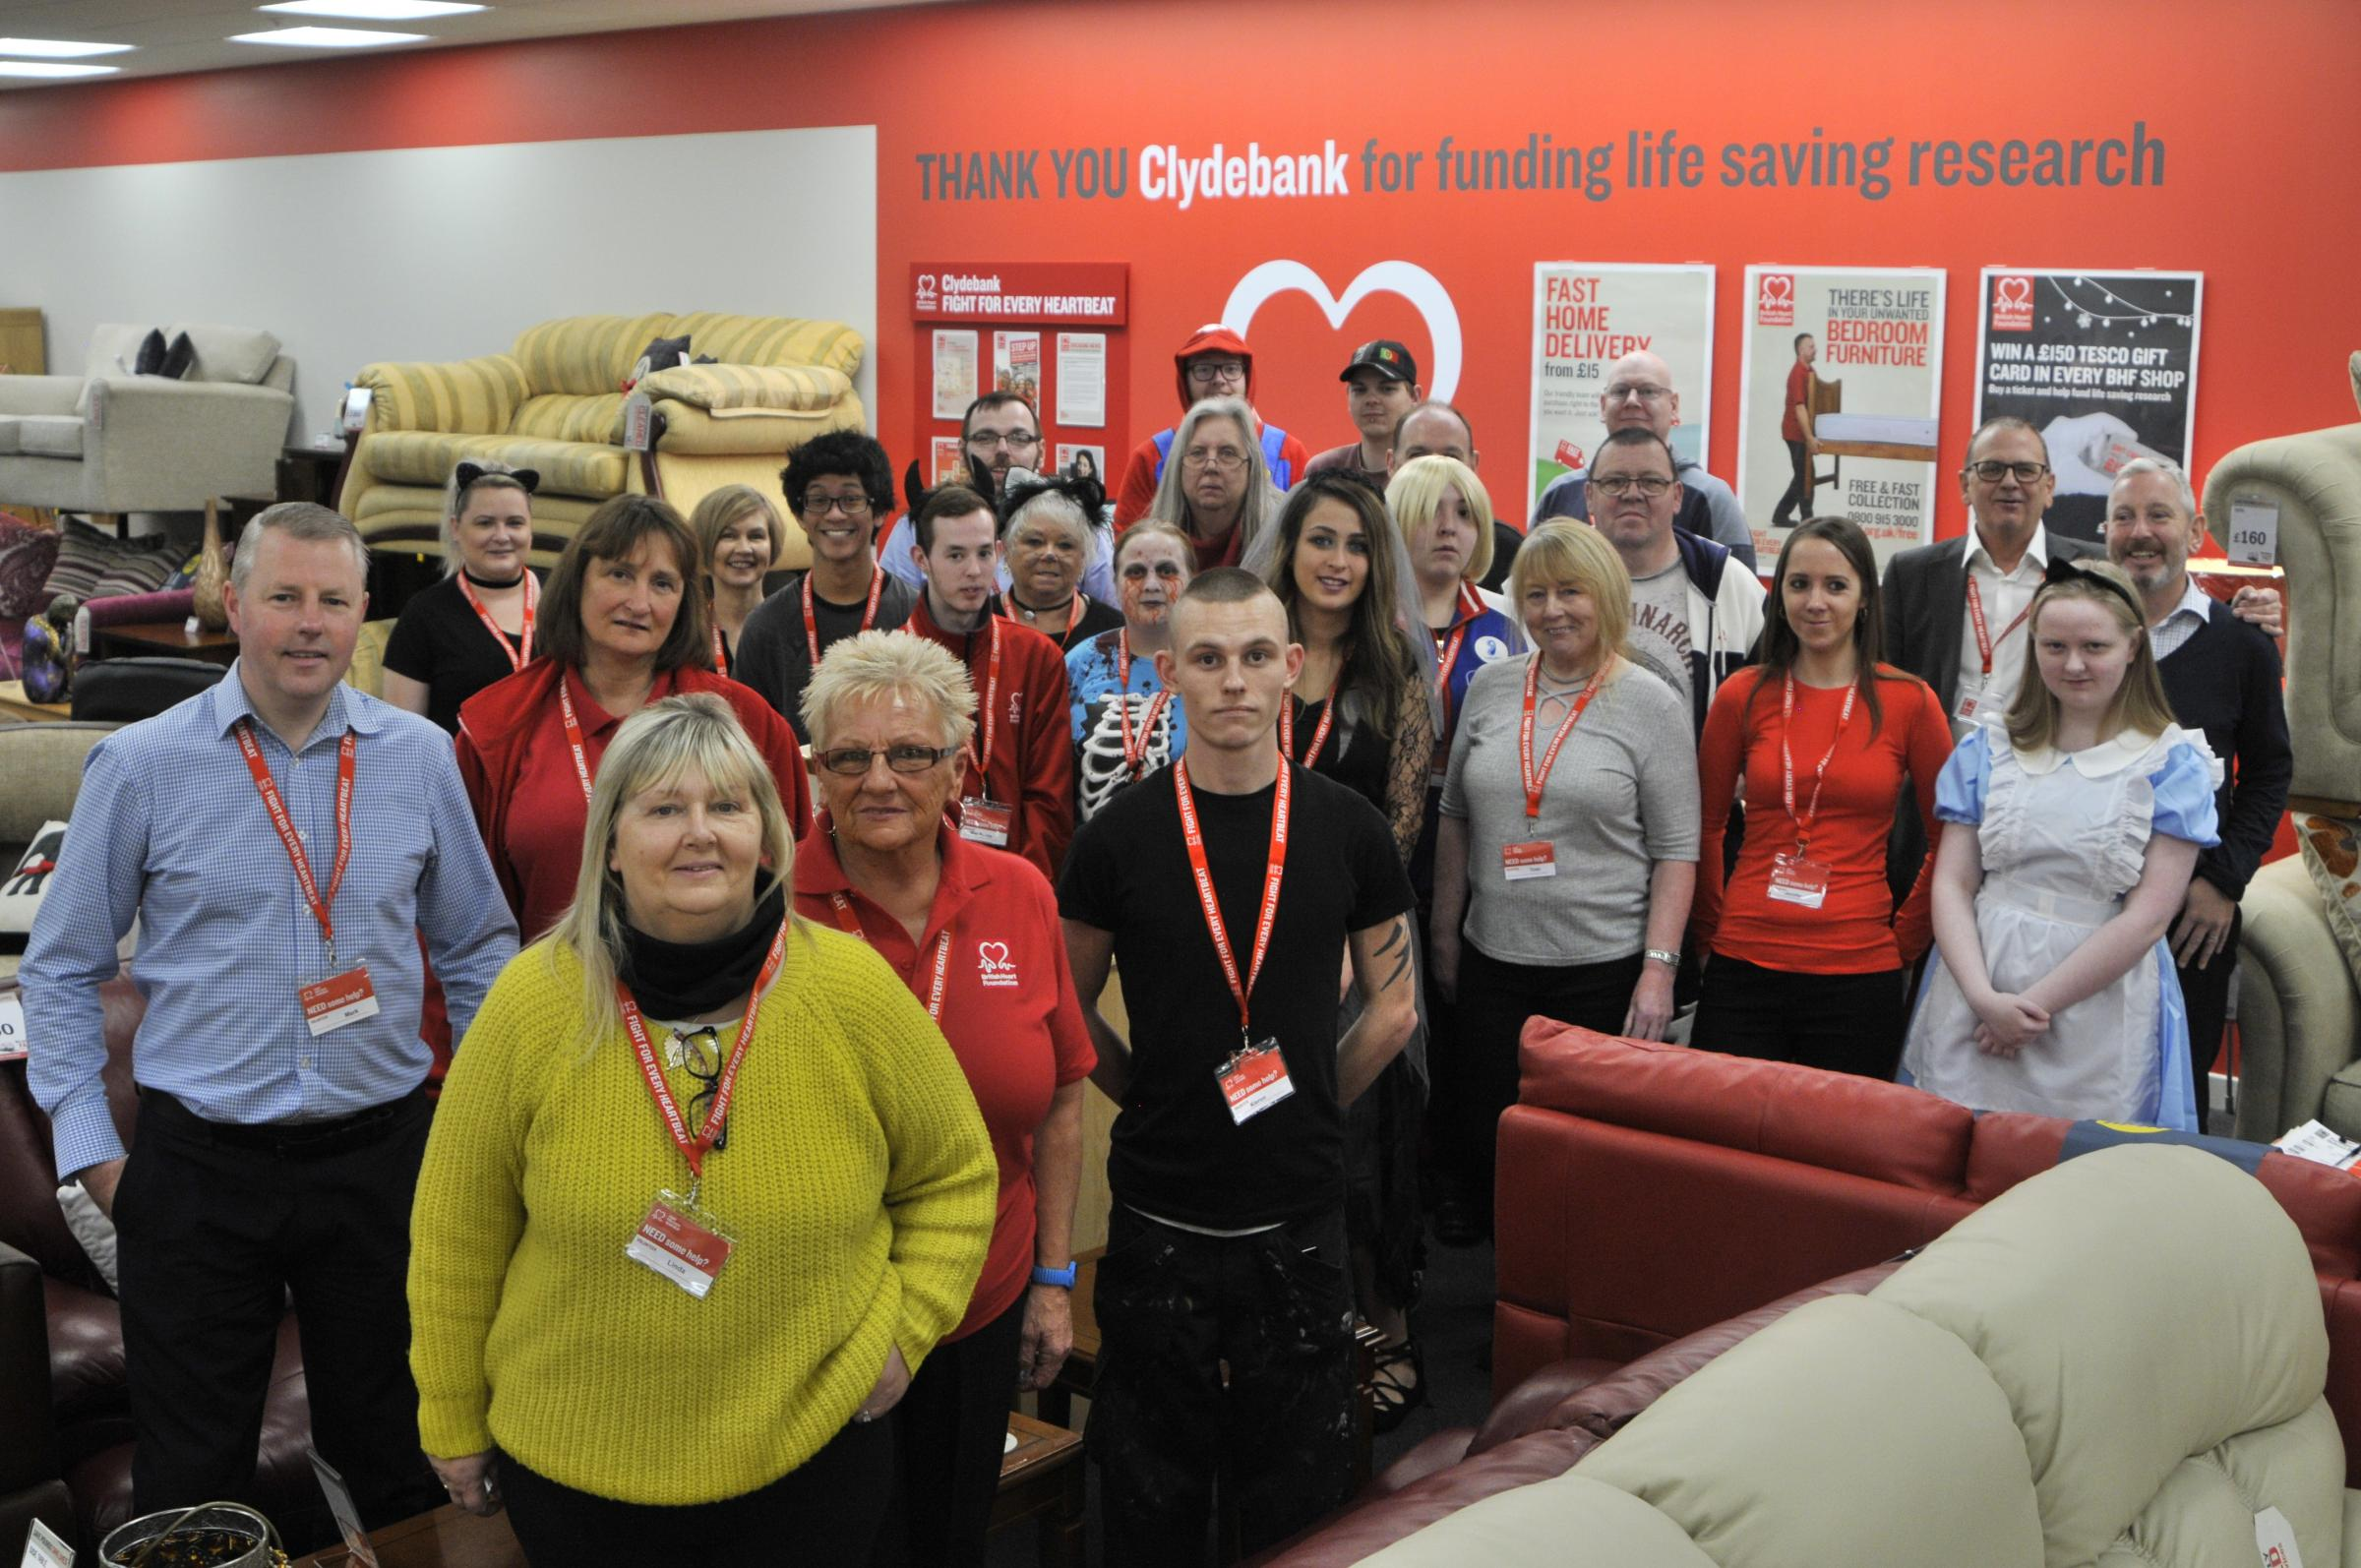 Staff and volunteers of the new BHF store in Clydebank get ready to welcome customers